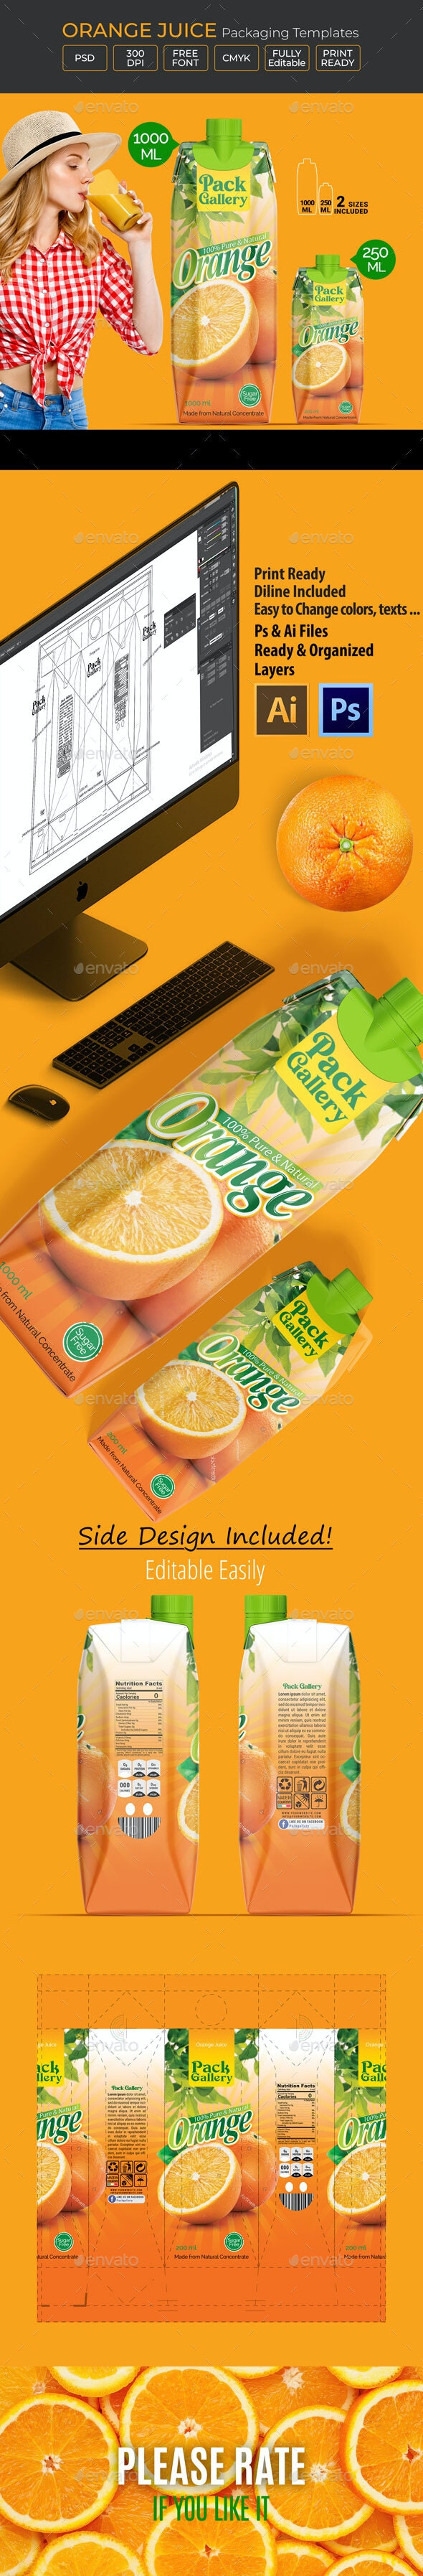 Orange Juice Template Packaging Design - Packaging Print Templates